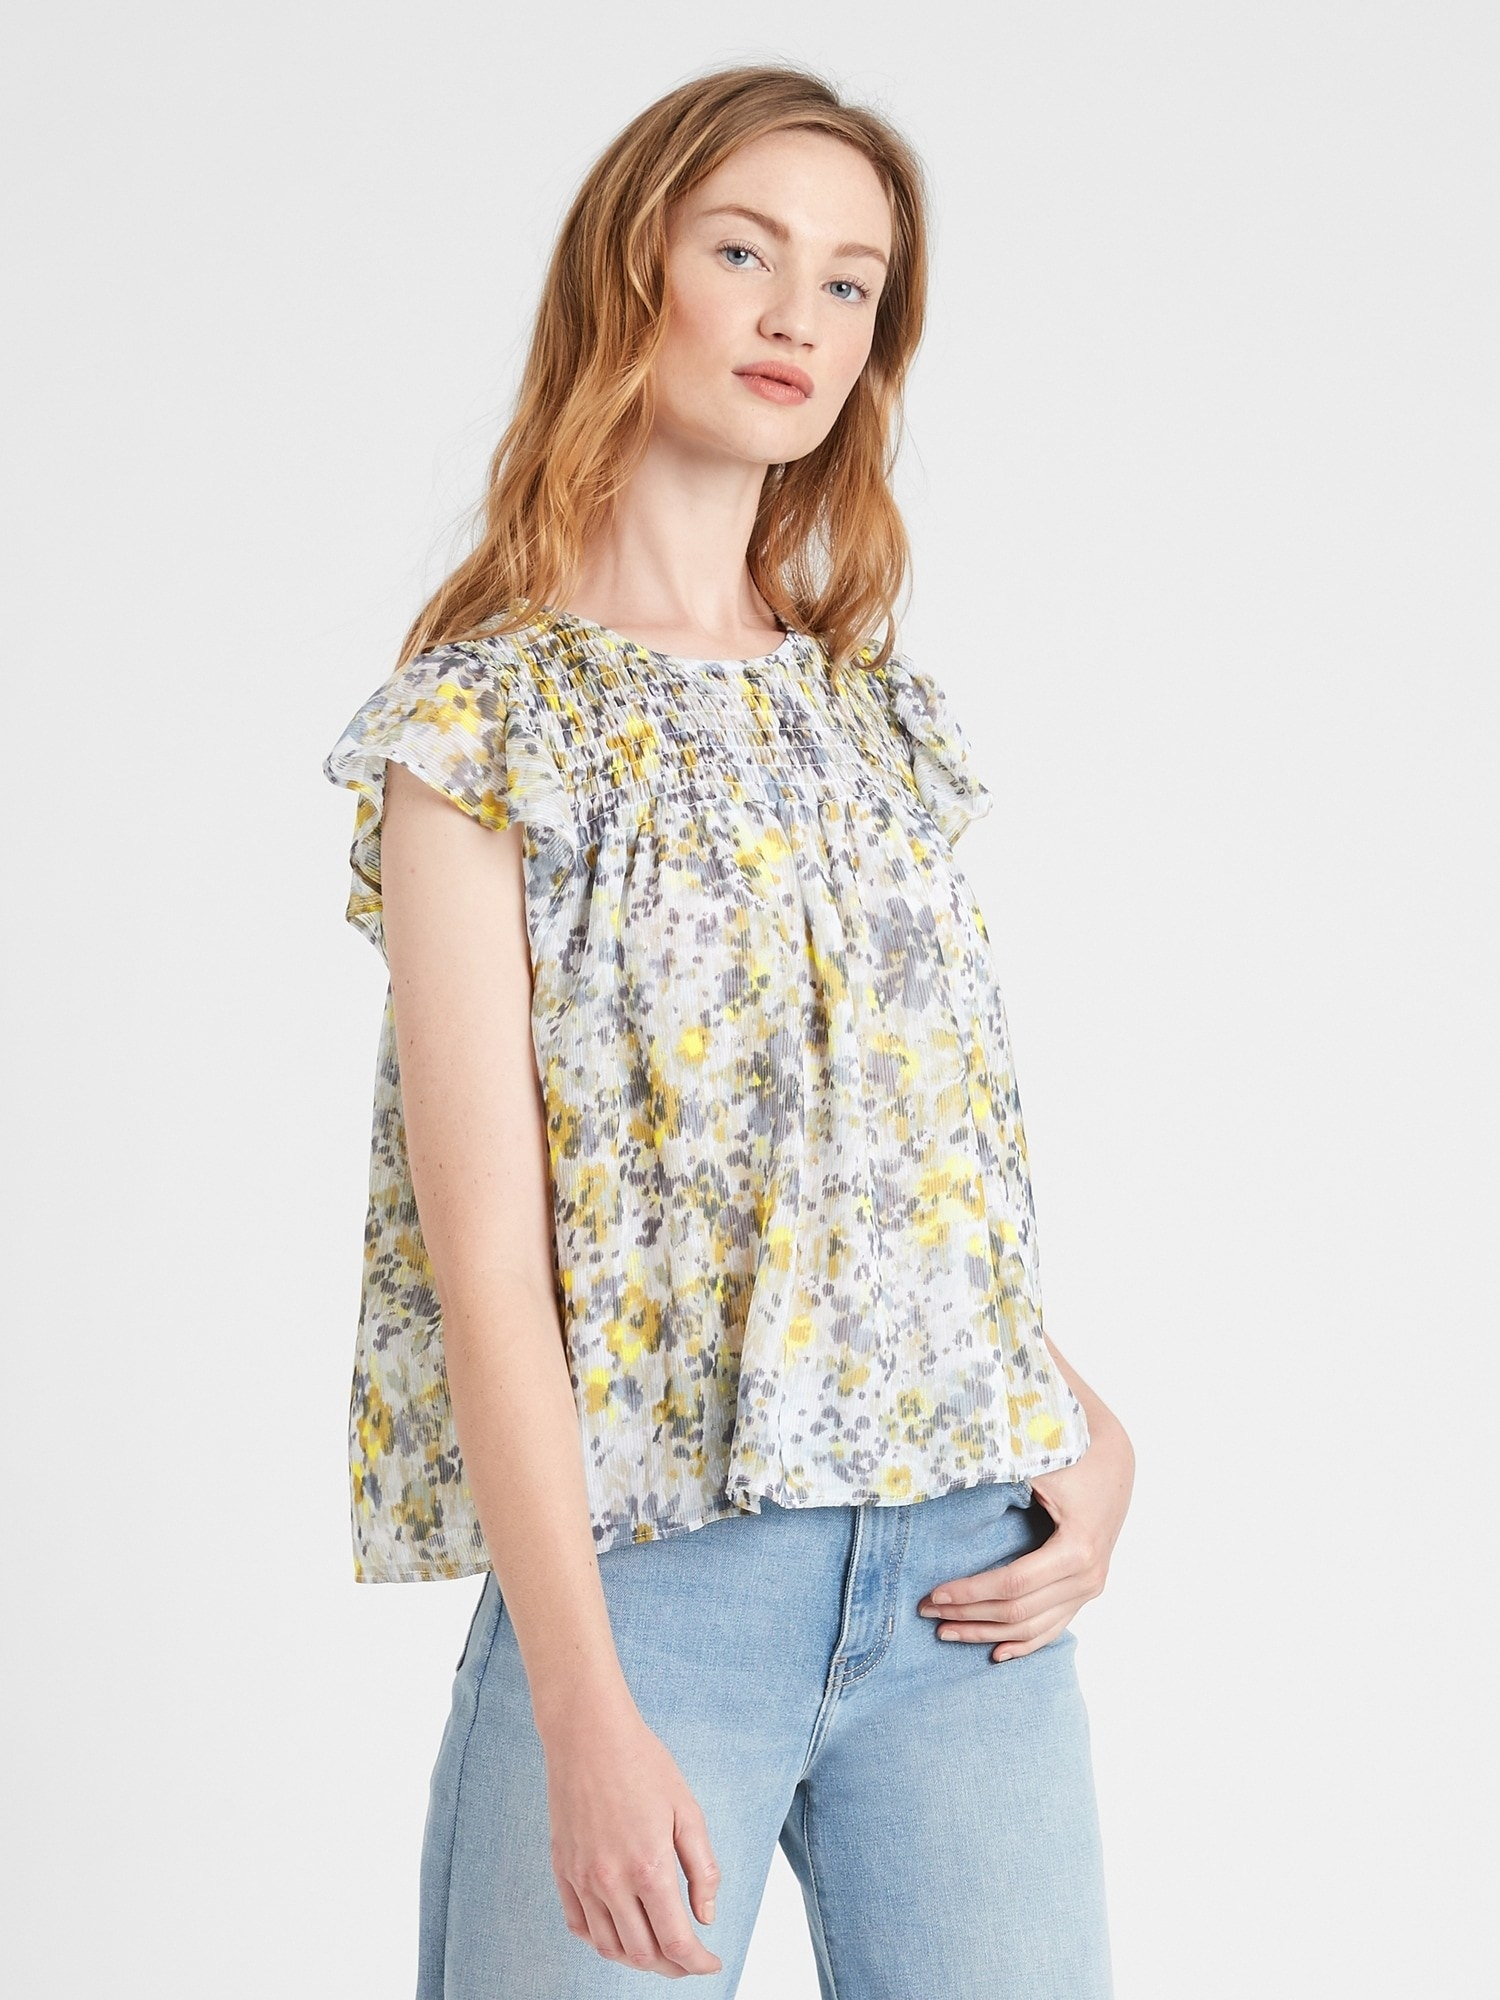 A model wearing the short flutter sleeve yellow and gray floral top with jeans